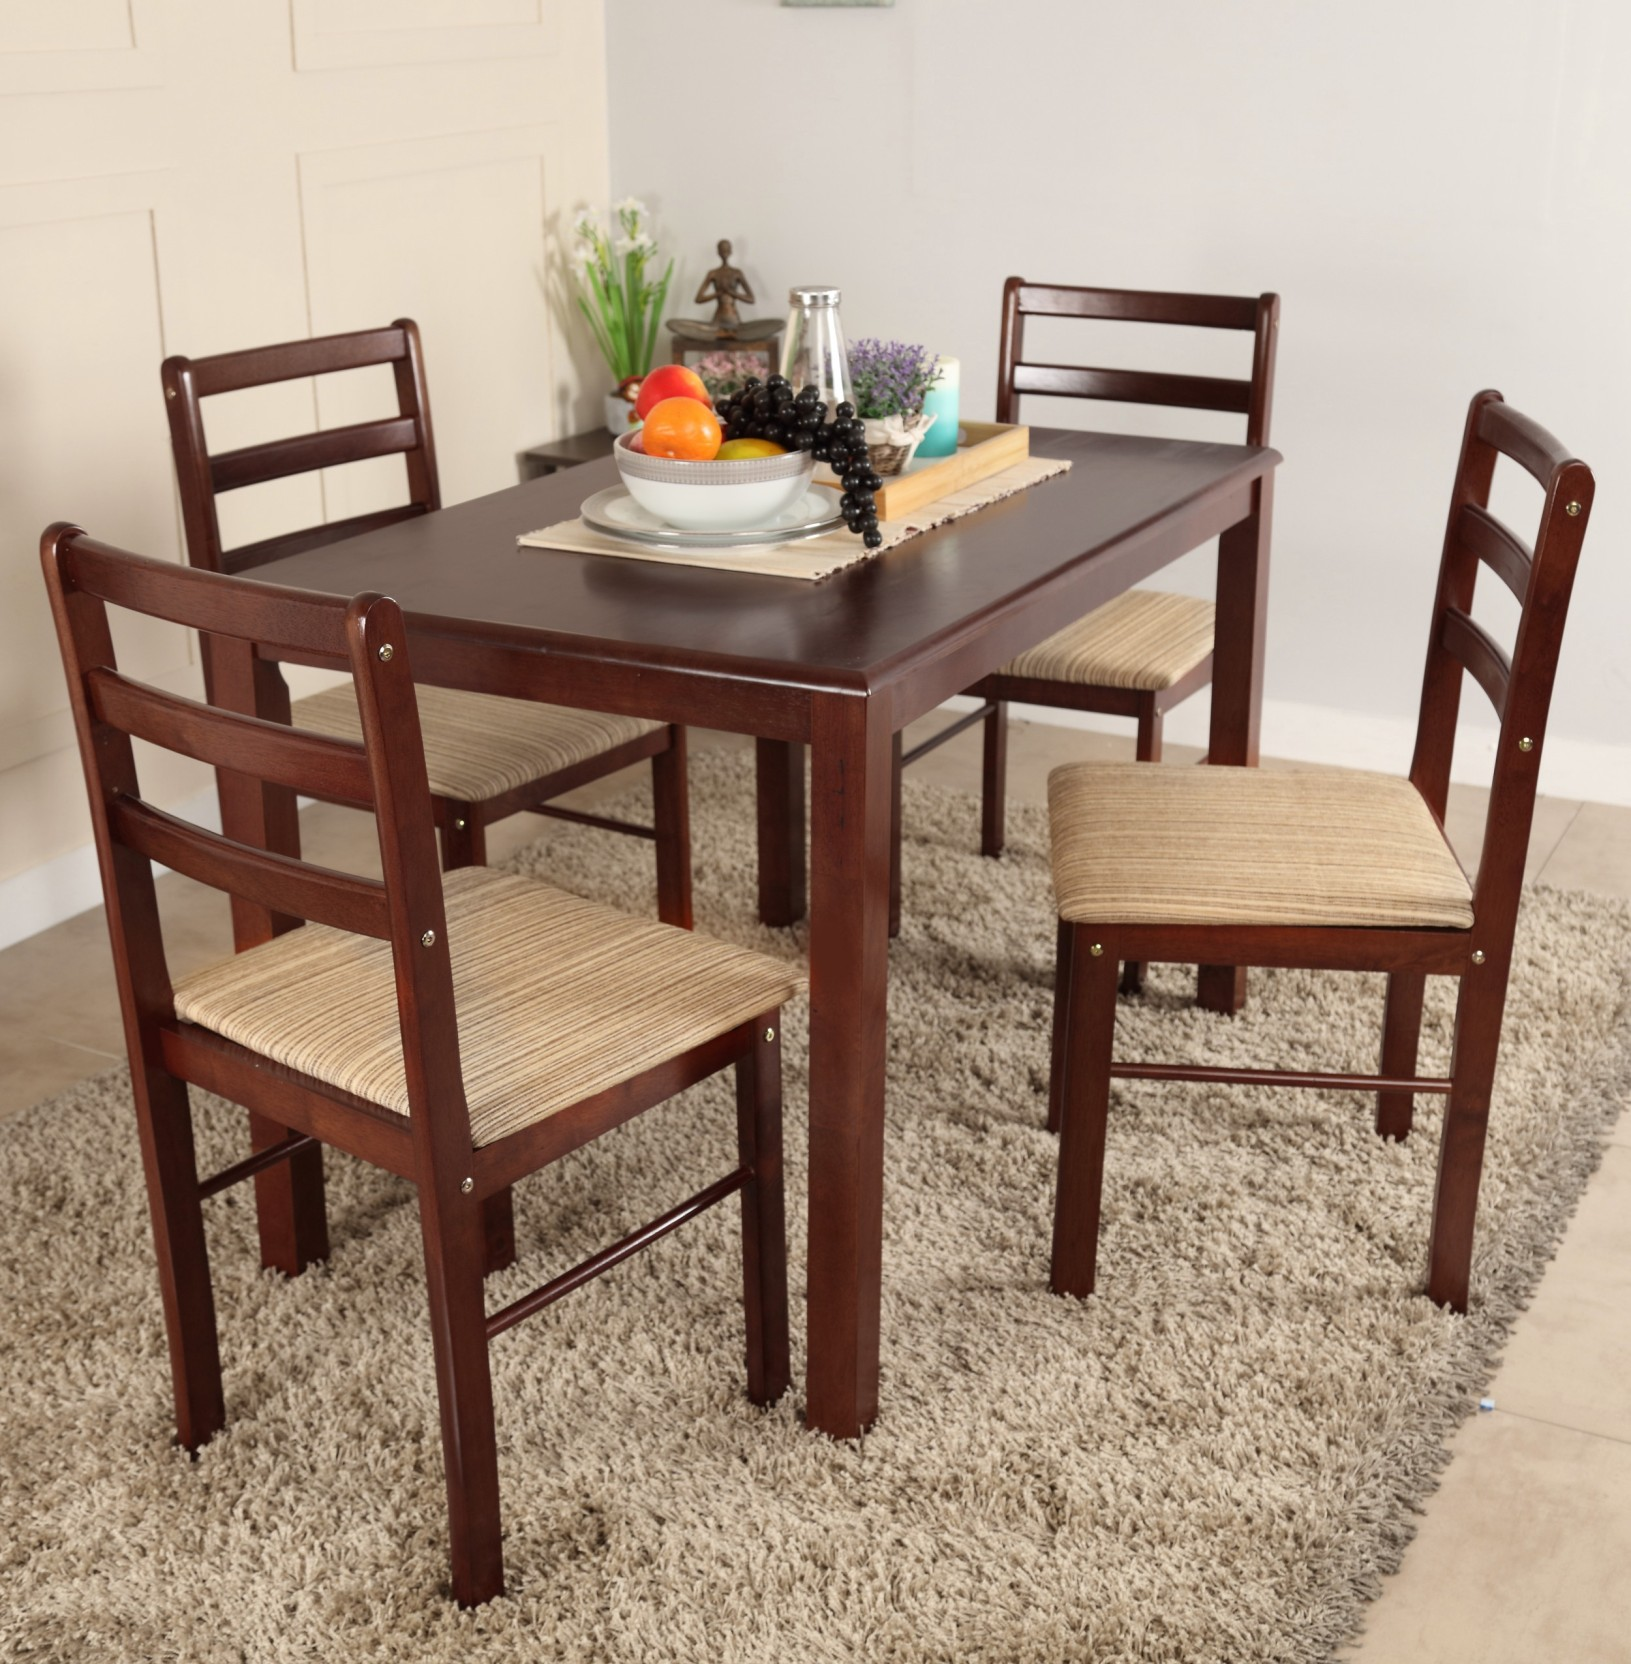 Emejing dining room tables and chairs for 4 images for R way dining room furniture